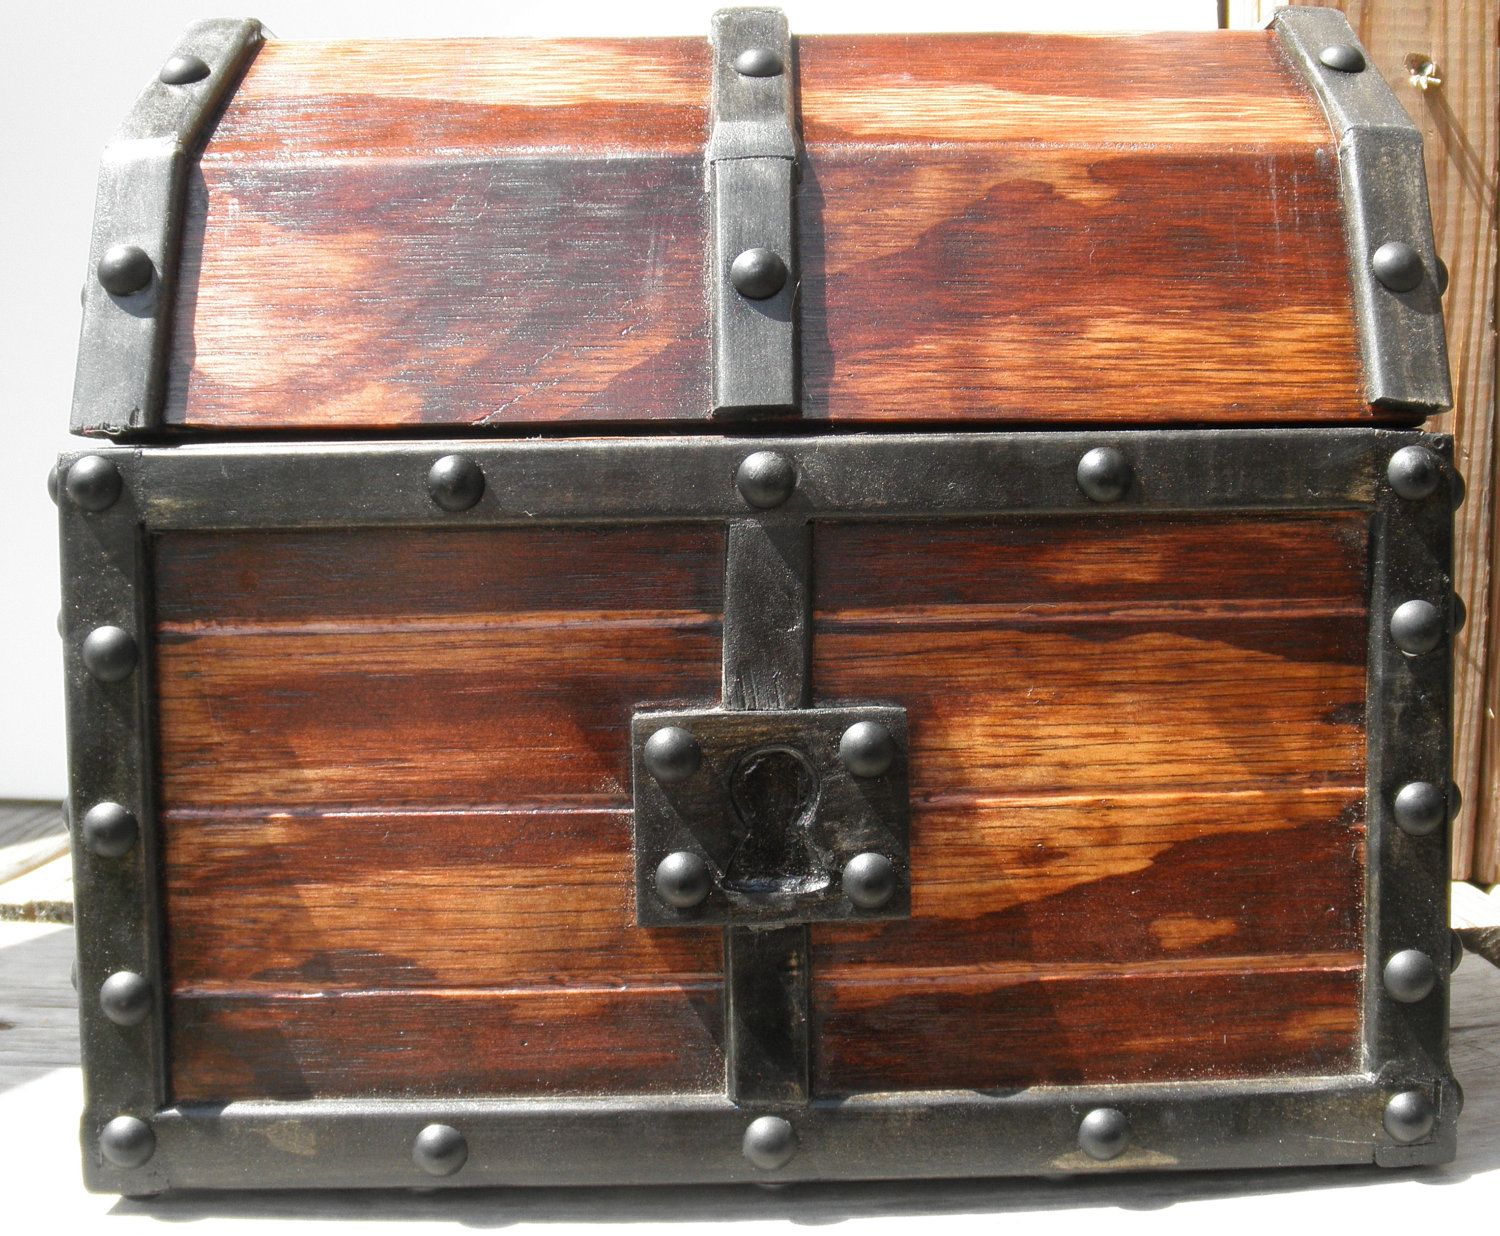 legend of zelda ocarina of time treasure chest with sound effect